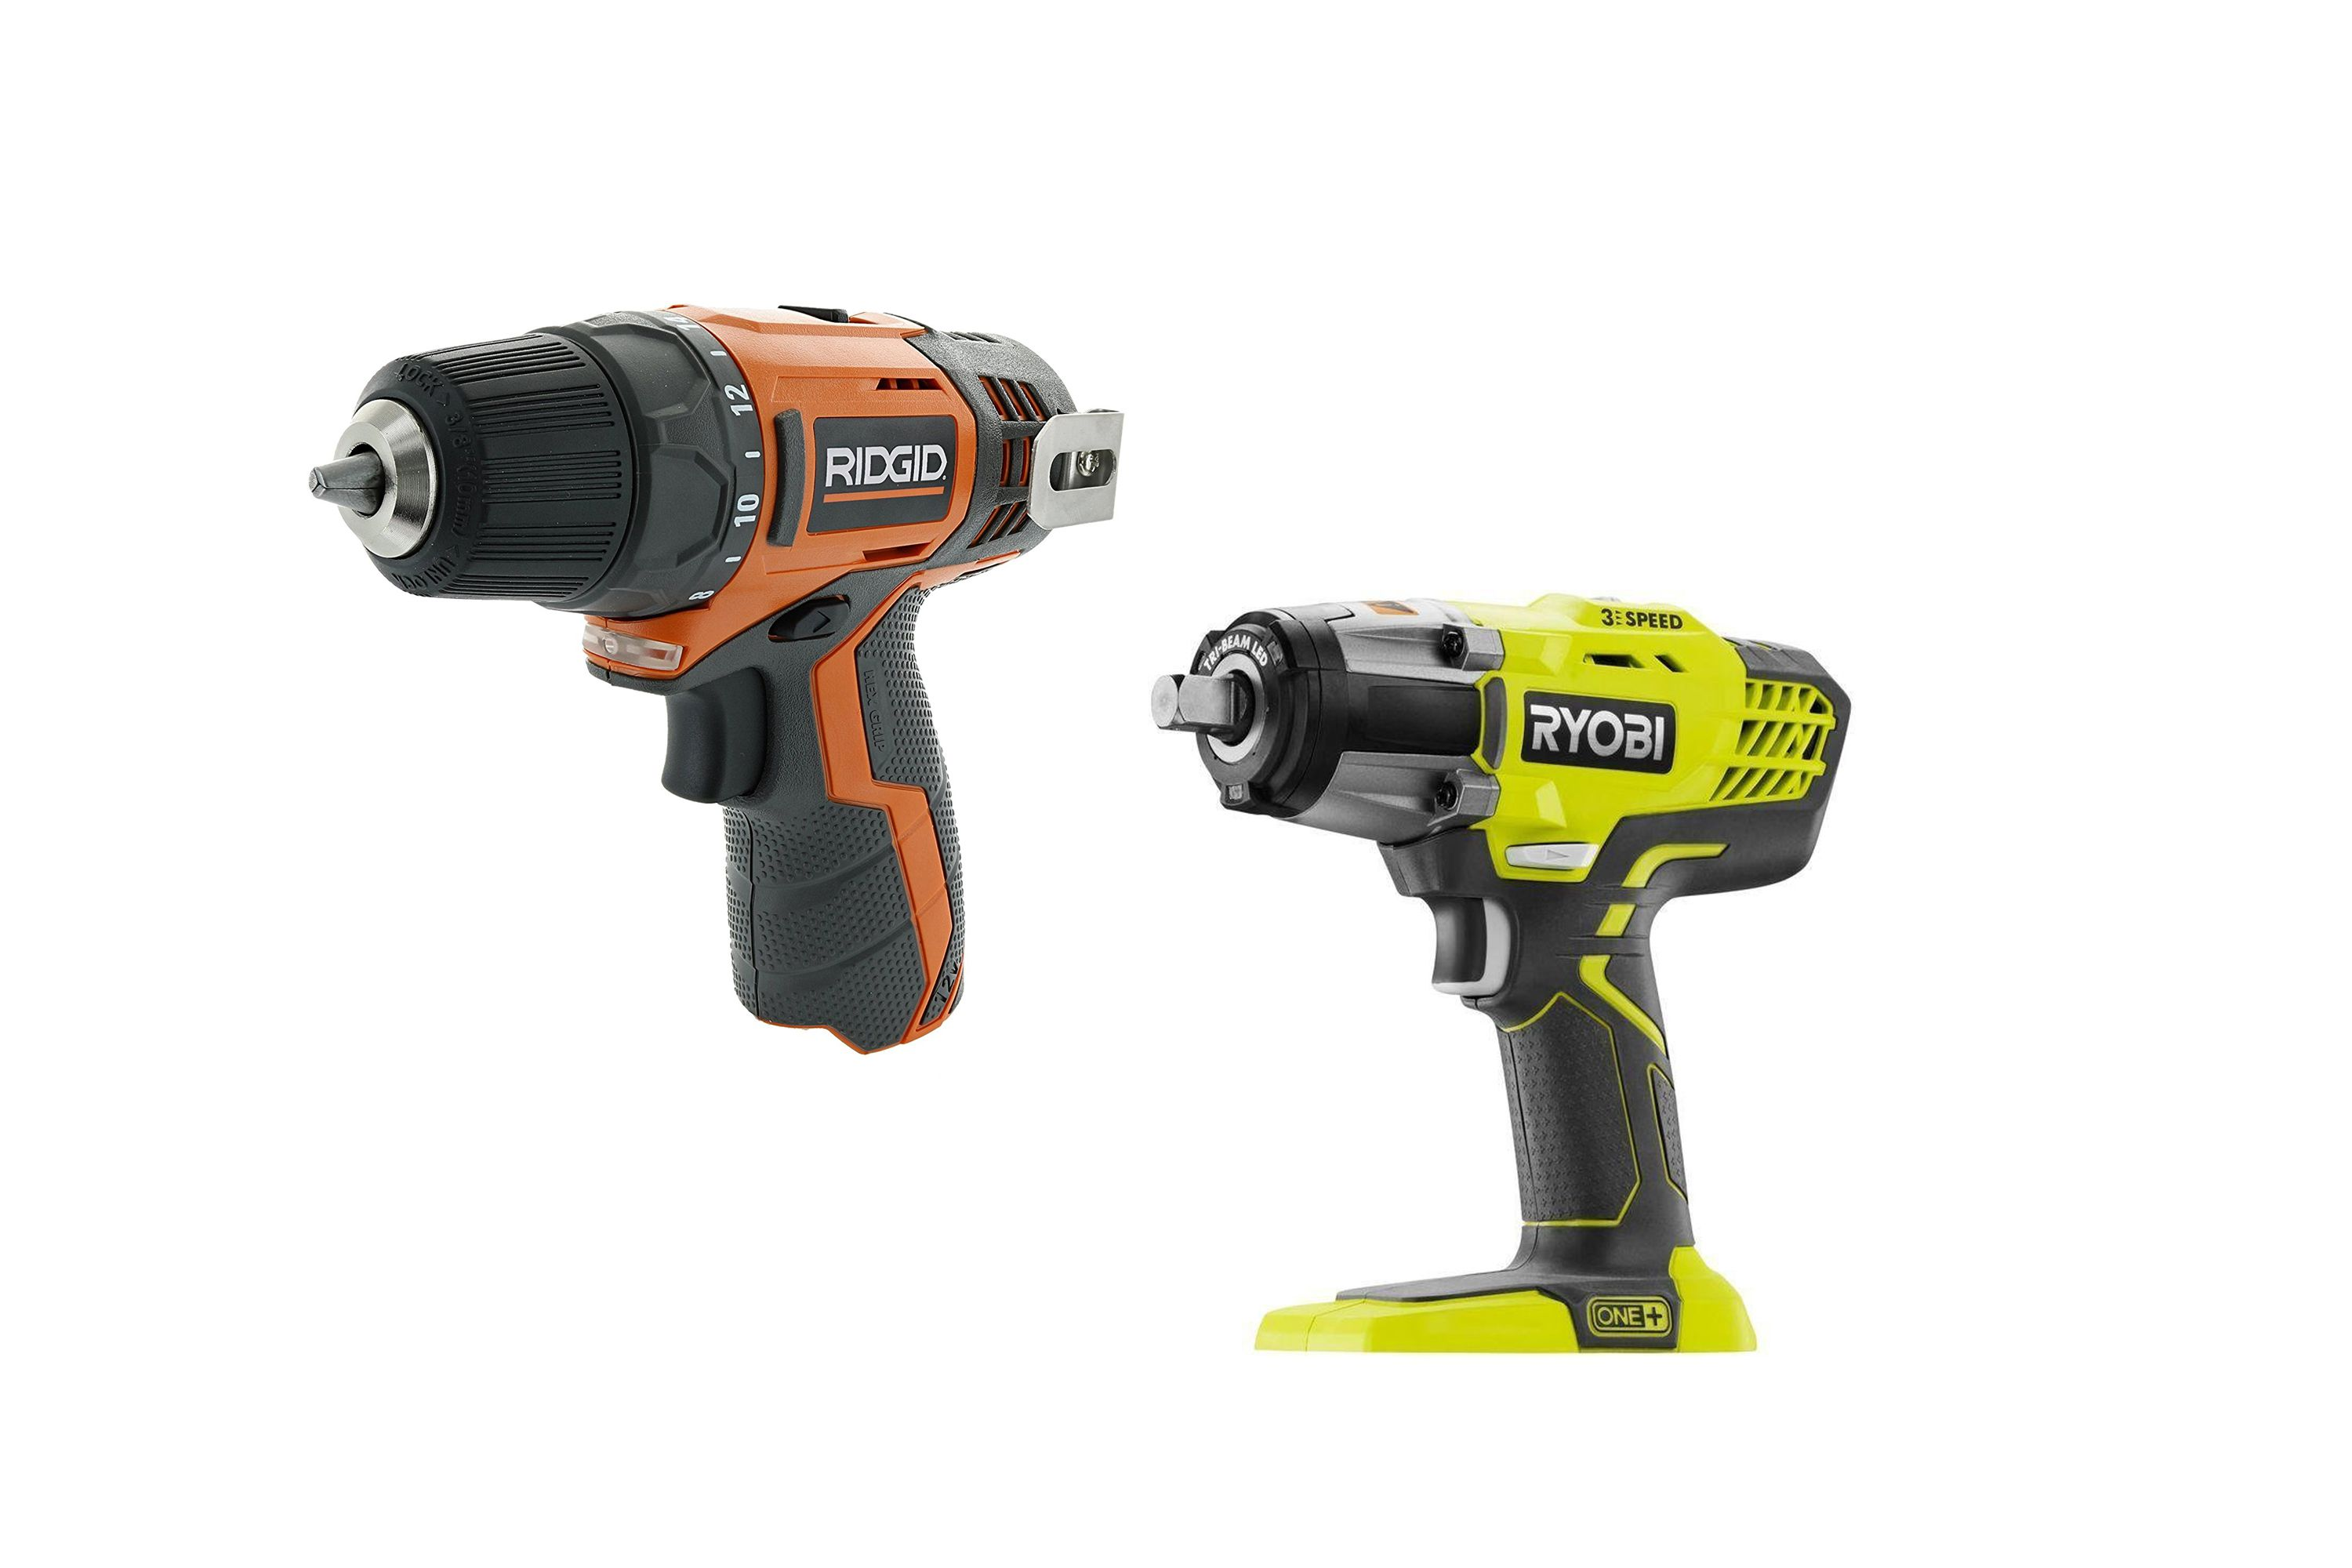 Ryobi and Ridgid Power Tools for DIY Consumers